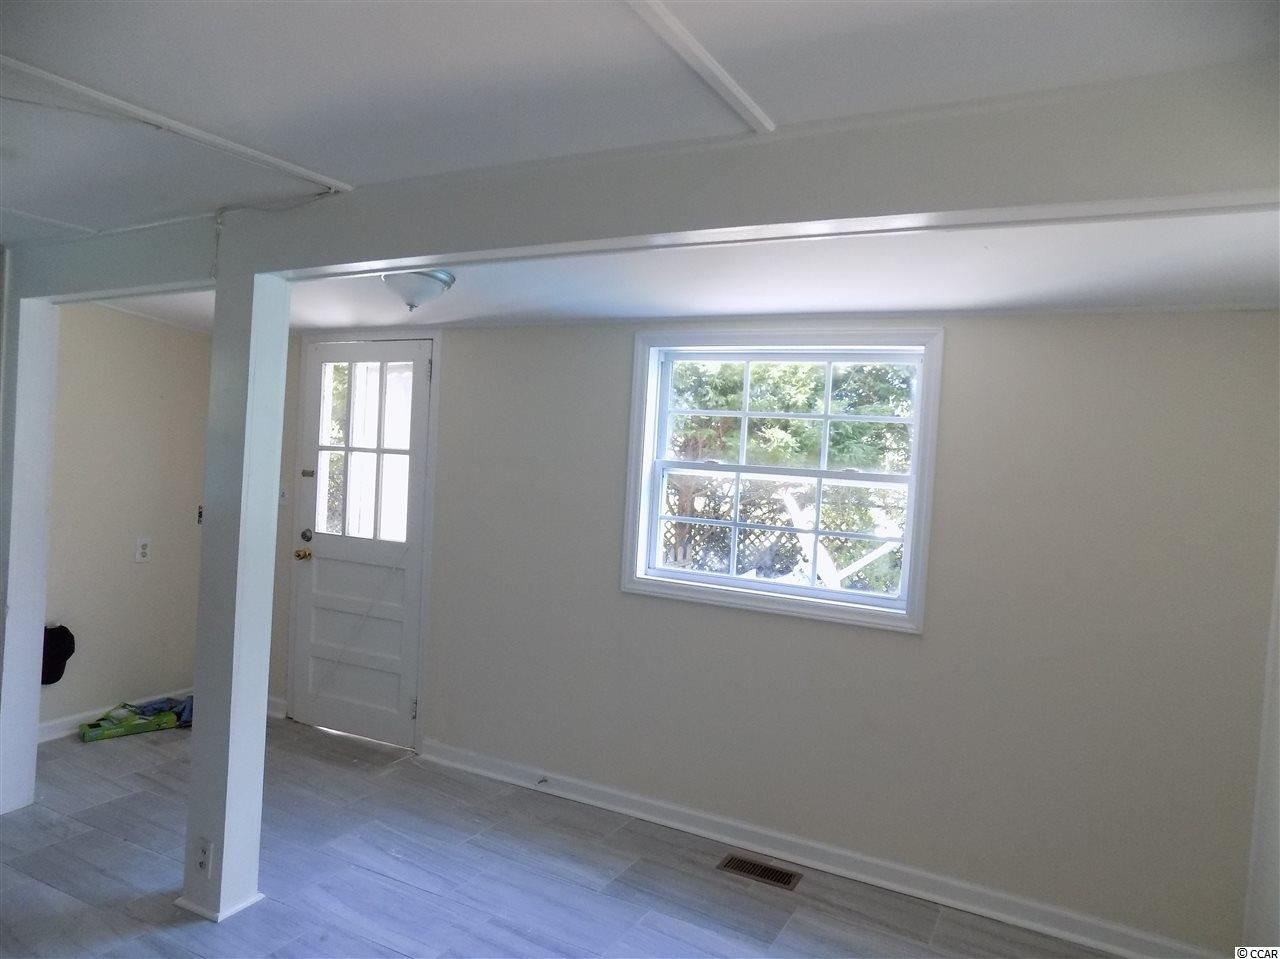 2 bedroom house at 604 13th Ave S